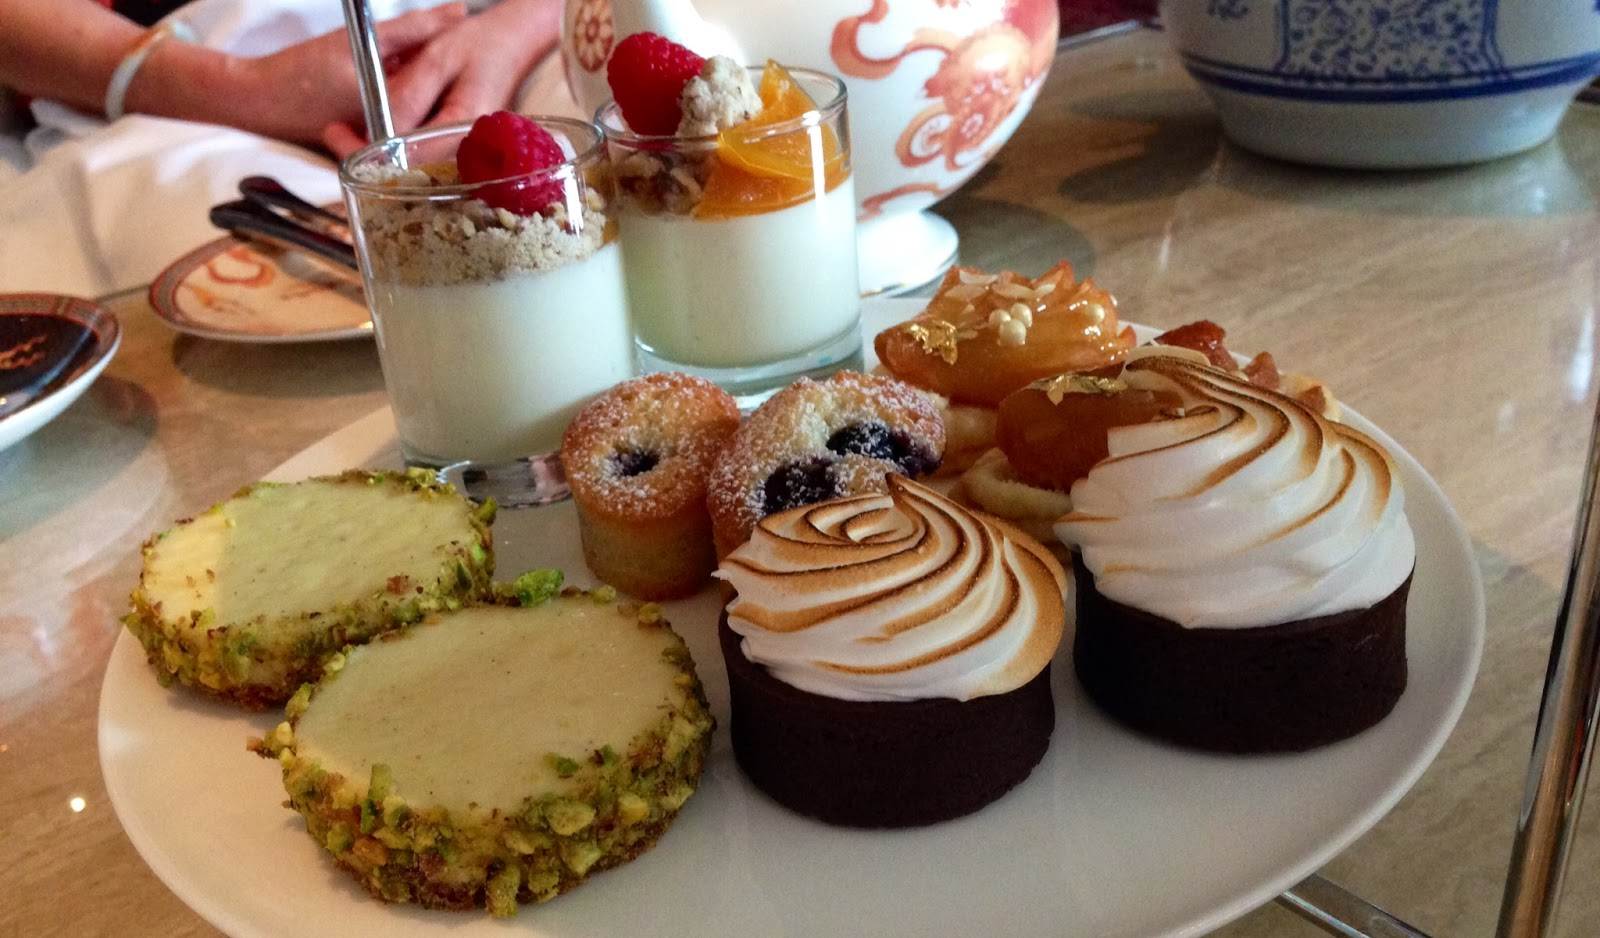 Shangri-La Afternoon Tea